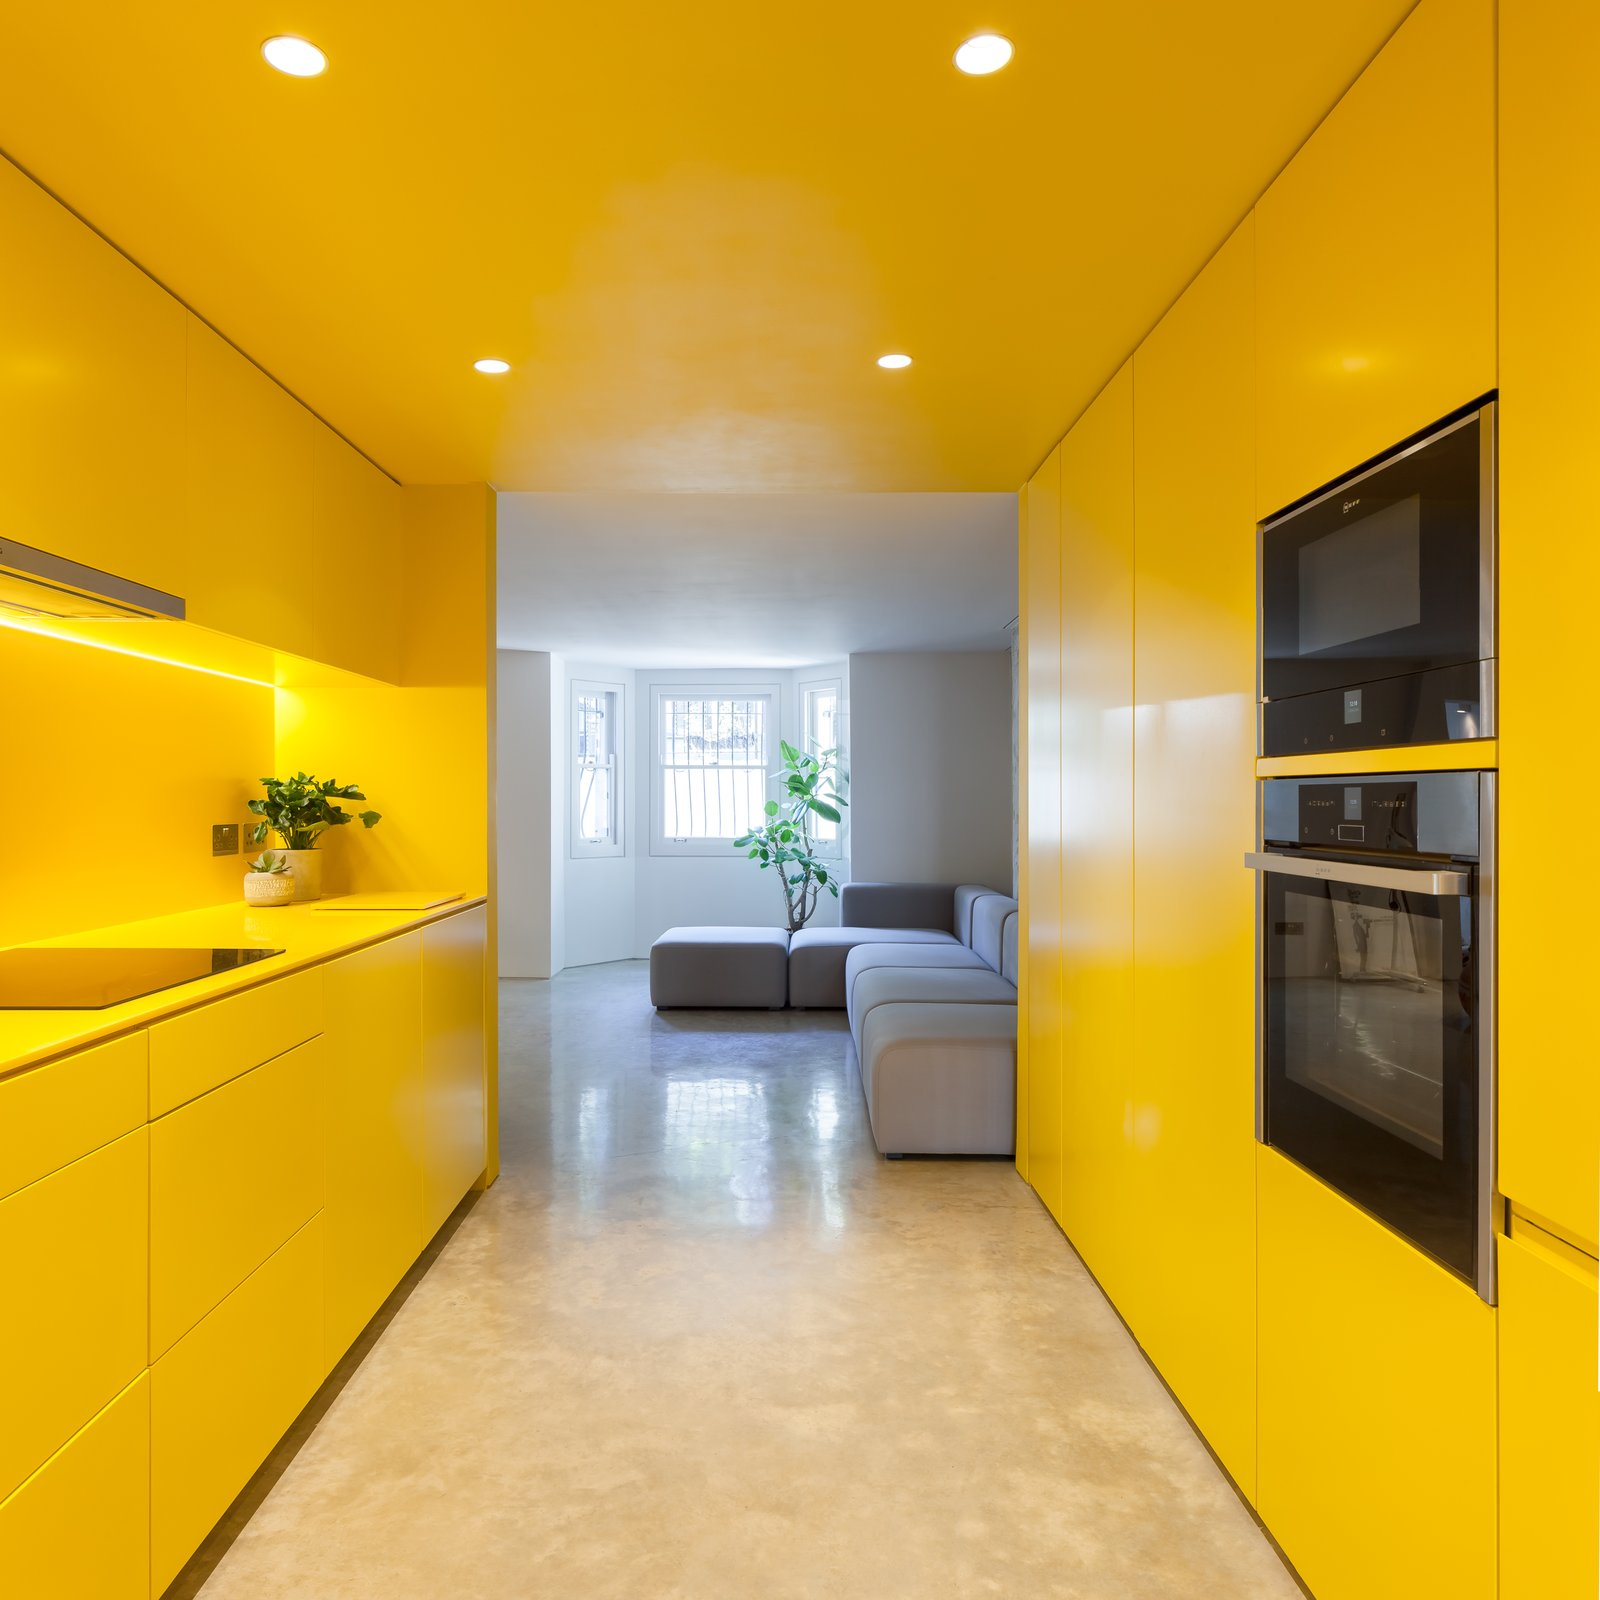 Kitchen, Accent Lighting, Cooktops, Recessed Lighting, Colorful Cabinet, and Wall Oven Designed by London-based practice RUSSIAN FOR FISH, this remodeled Victorian home has an almost completely yellow kitchen. Being in this space feels like being immersed in bright sunlight.  Photos from 12 Electrifying Kitchens That Are Unapologetic About Color